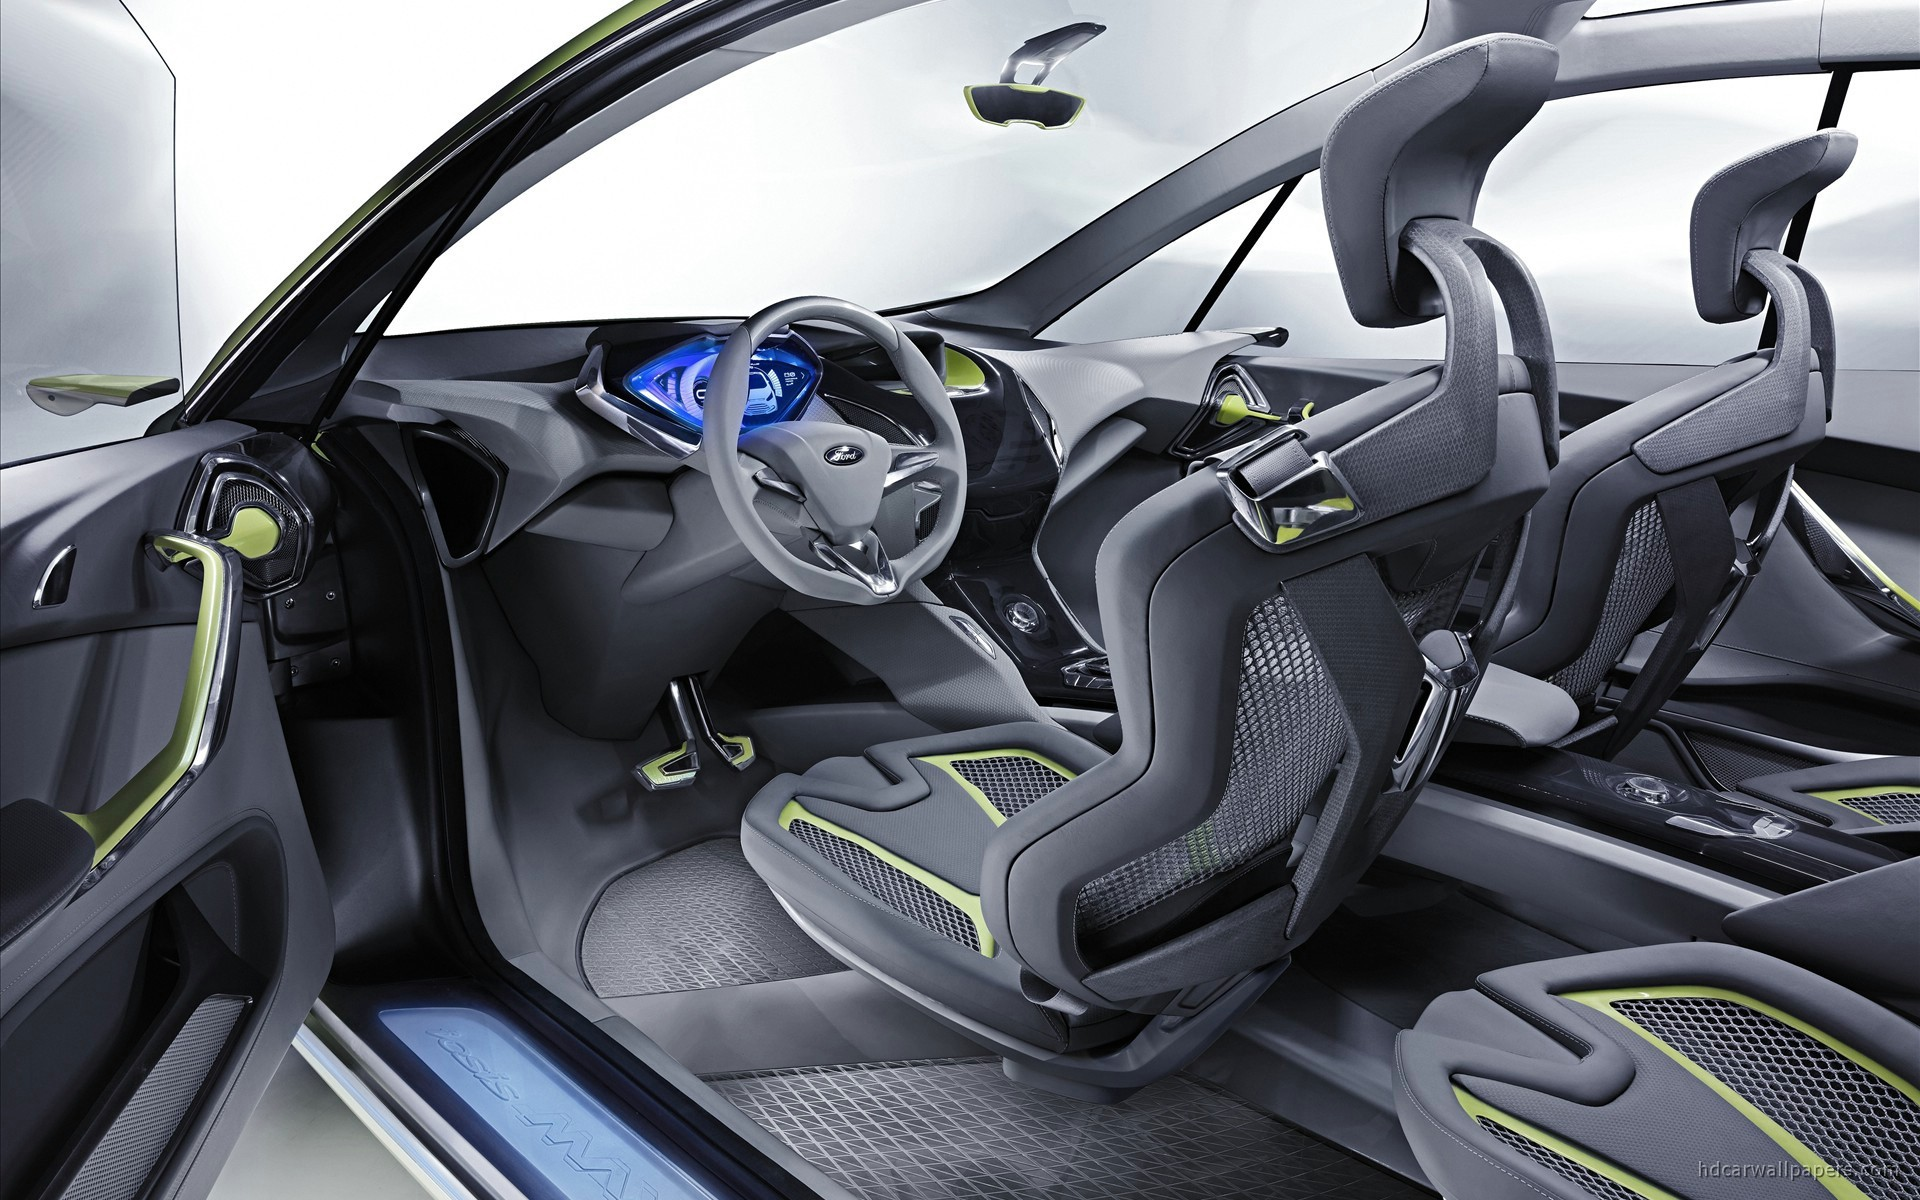 2009 Ford iosis MAX Concept Interior Wallpaper | HD Car ...